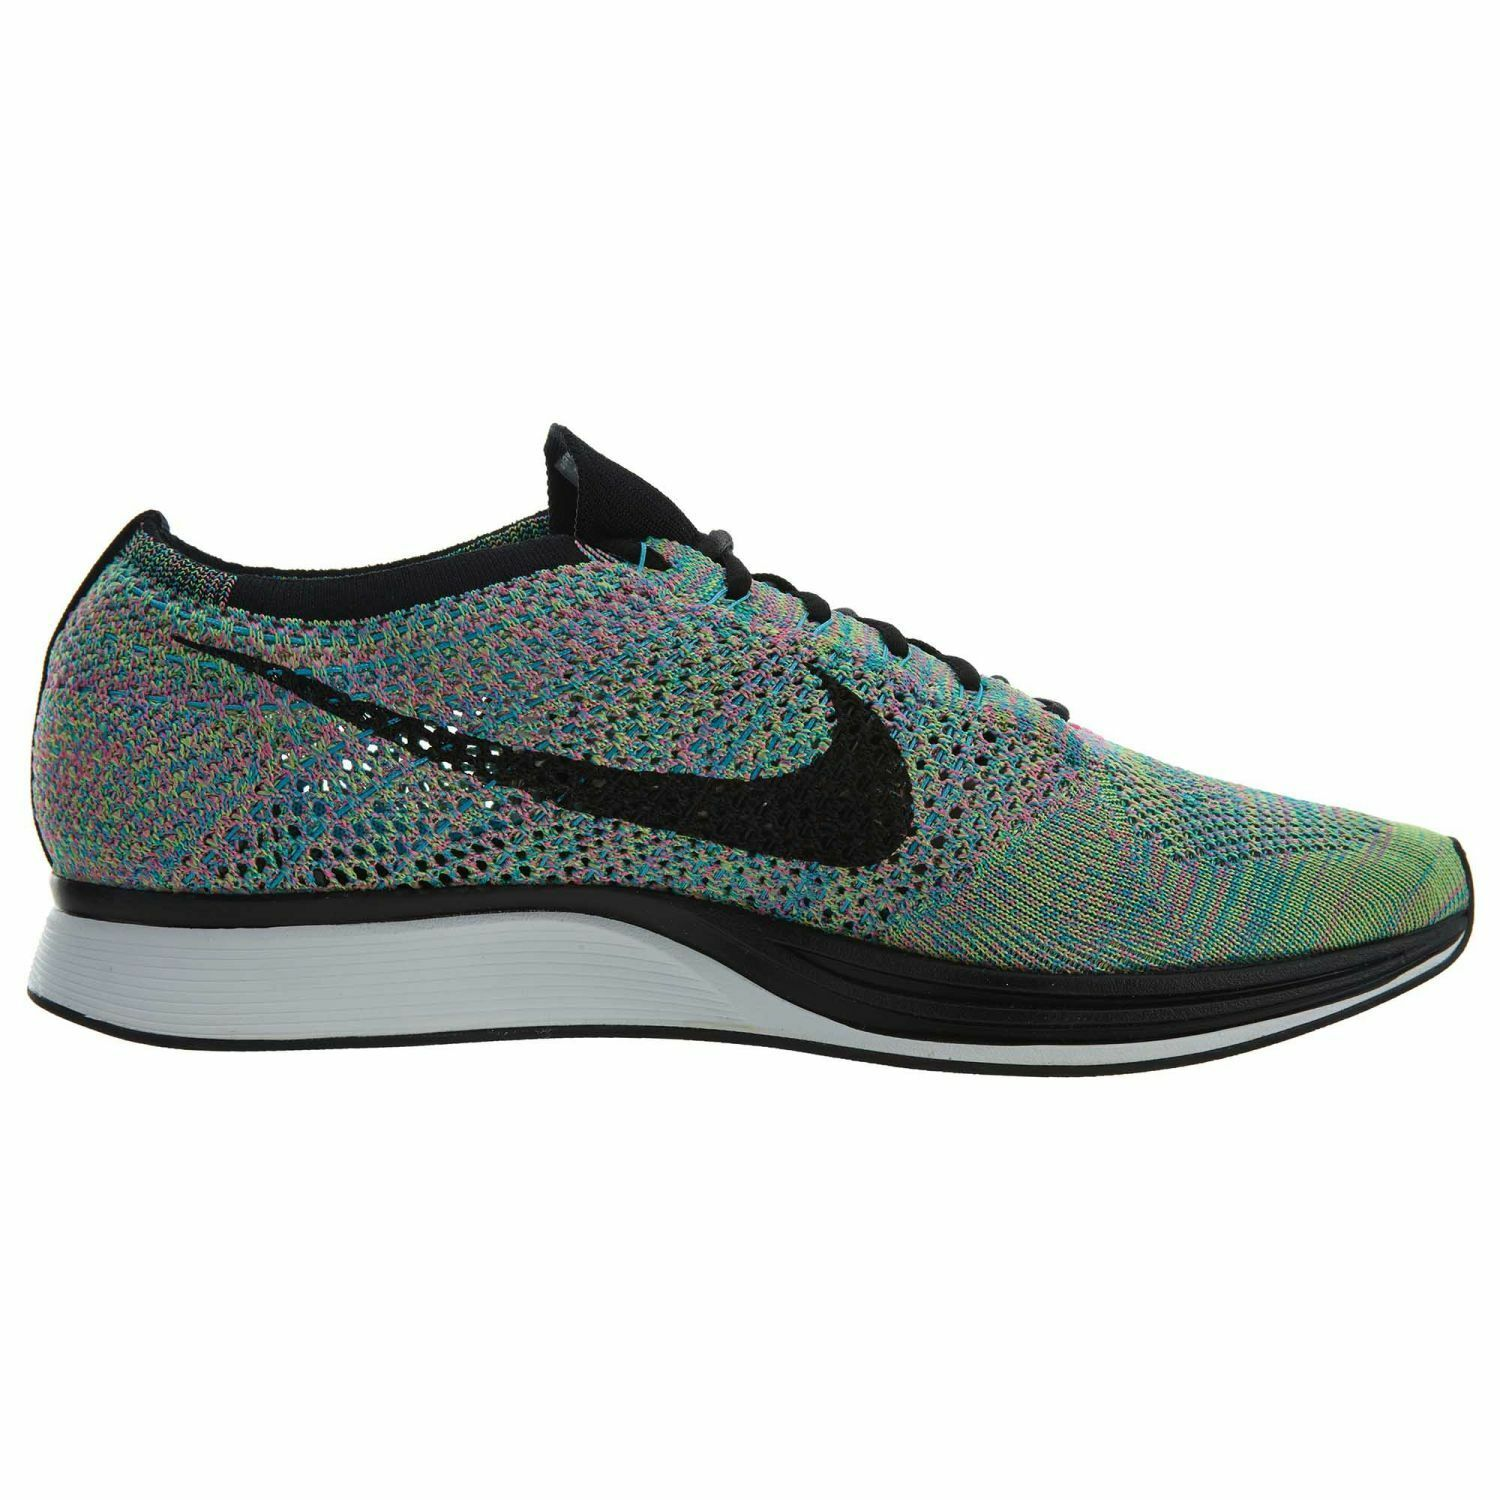 Nike Flyknit Racer Mens 526628-304 Rainbow Multi Color Running Shoes Size 13